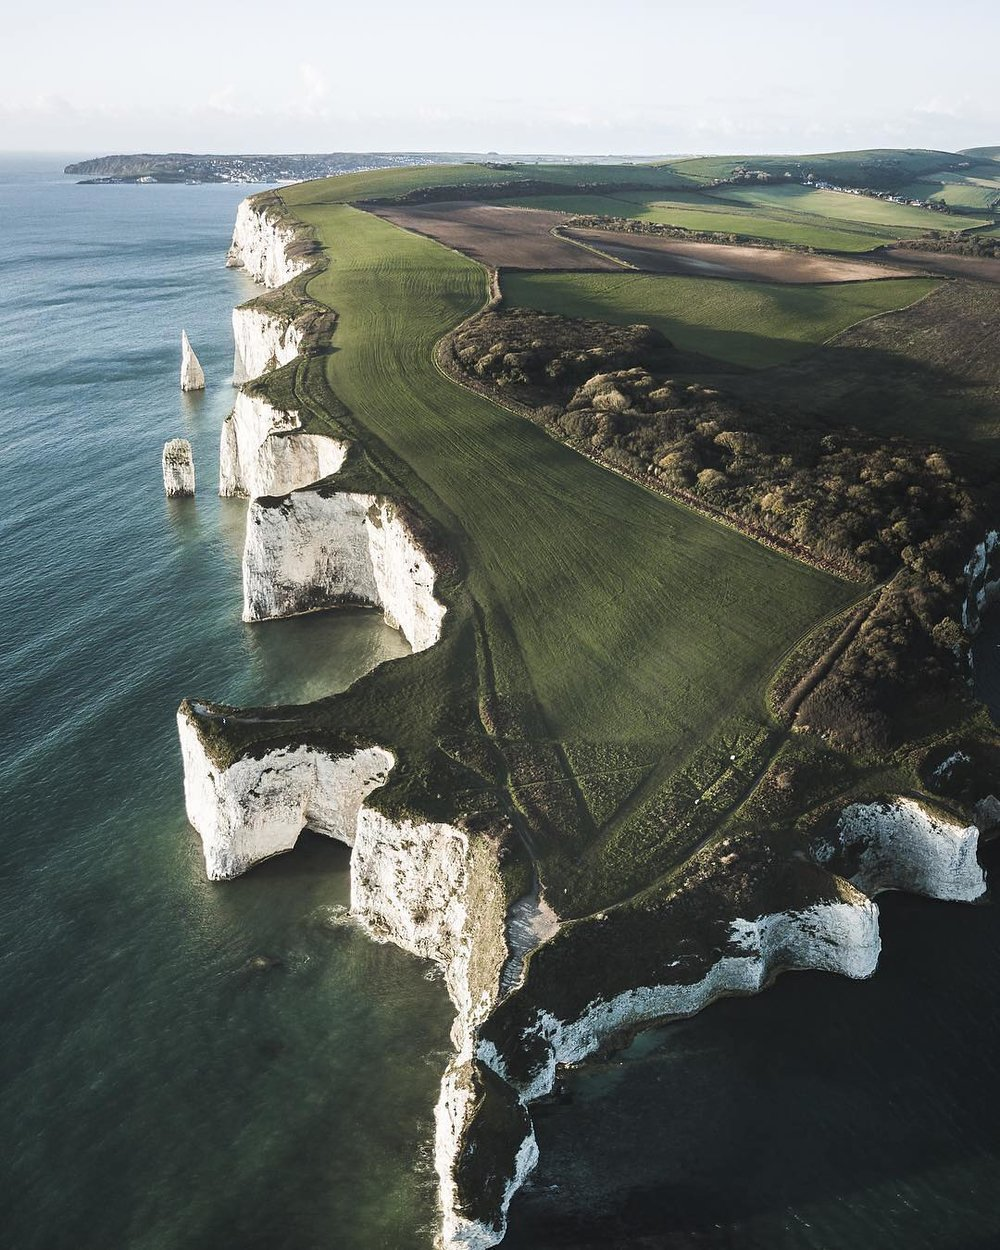 "Check out this week's ""Drone Sunday"" post from From Where I Drone, which gives us an amazing view of Old Harry Rocks, a unique formation of chalk cliffs on the Isle of Purbeck in Dorset, southern England. These rocks were formed approximately 66 million years ago, and have been gradually eroded over centuries, leaving behind standalone columns in some places. Be sure to follow From Where I Drone for more incredible drone photos!  50°38'32.3""N, 1°55'25.0""W  Source imagery: Paul Watson Photography"